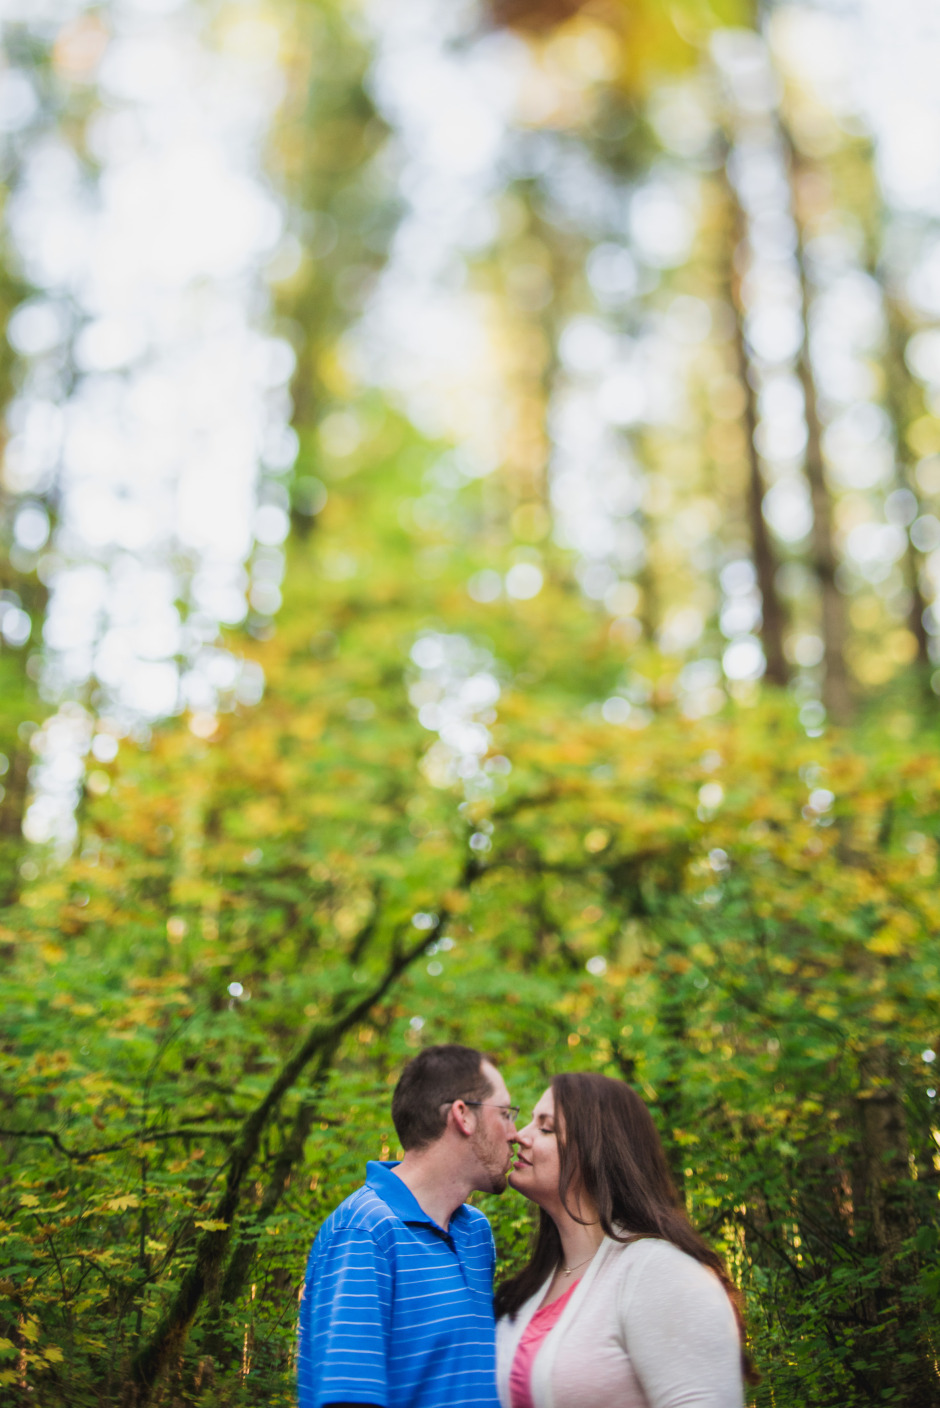 bc-wedding-photographers-campbell-valley-park-engagement-5.jpg